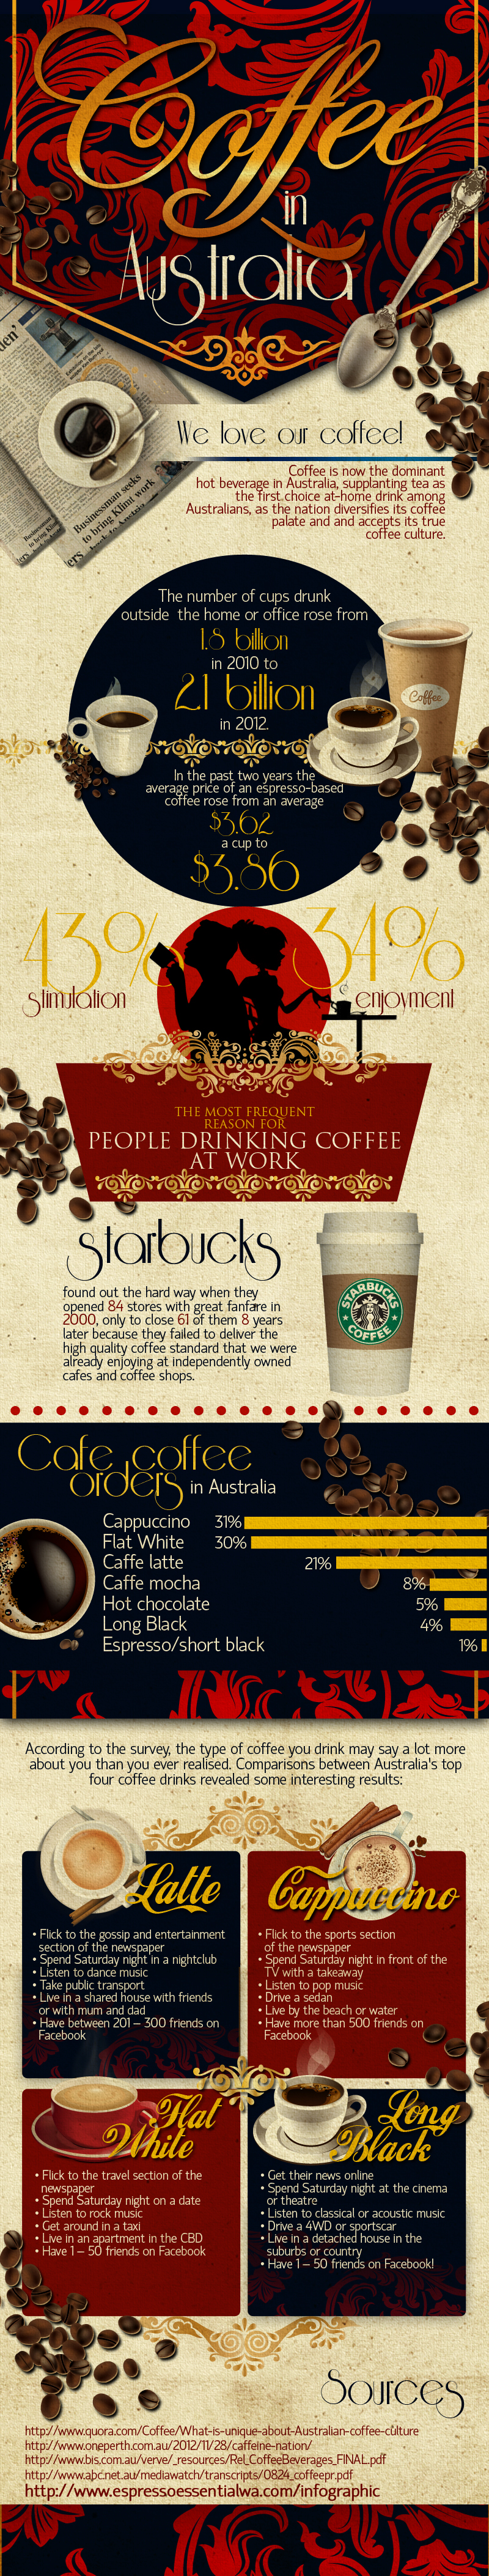 Coffee in Australia